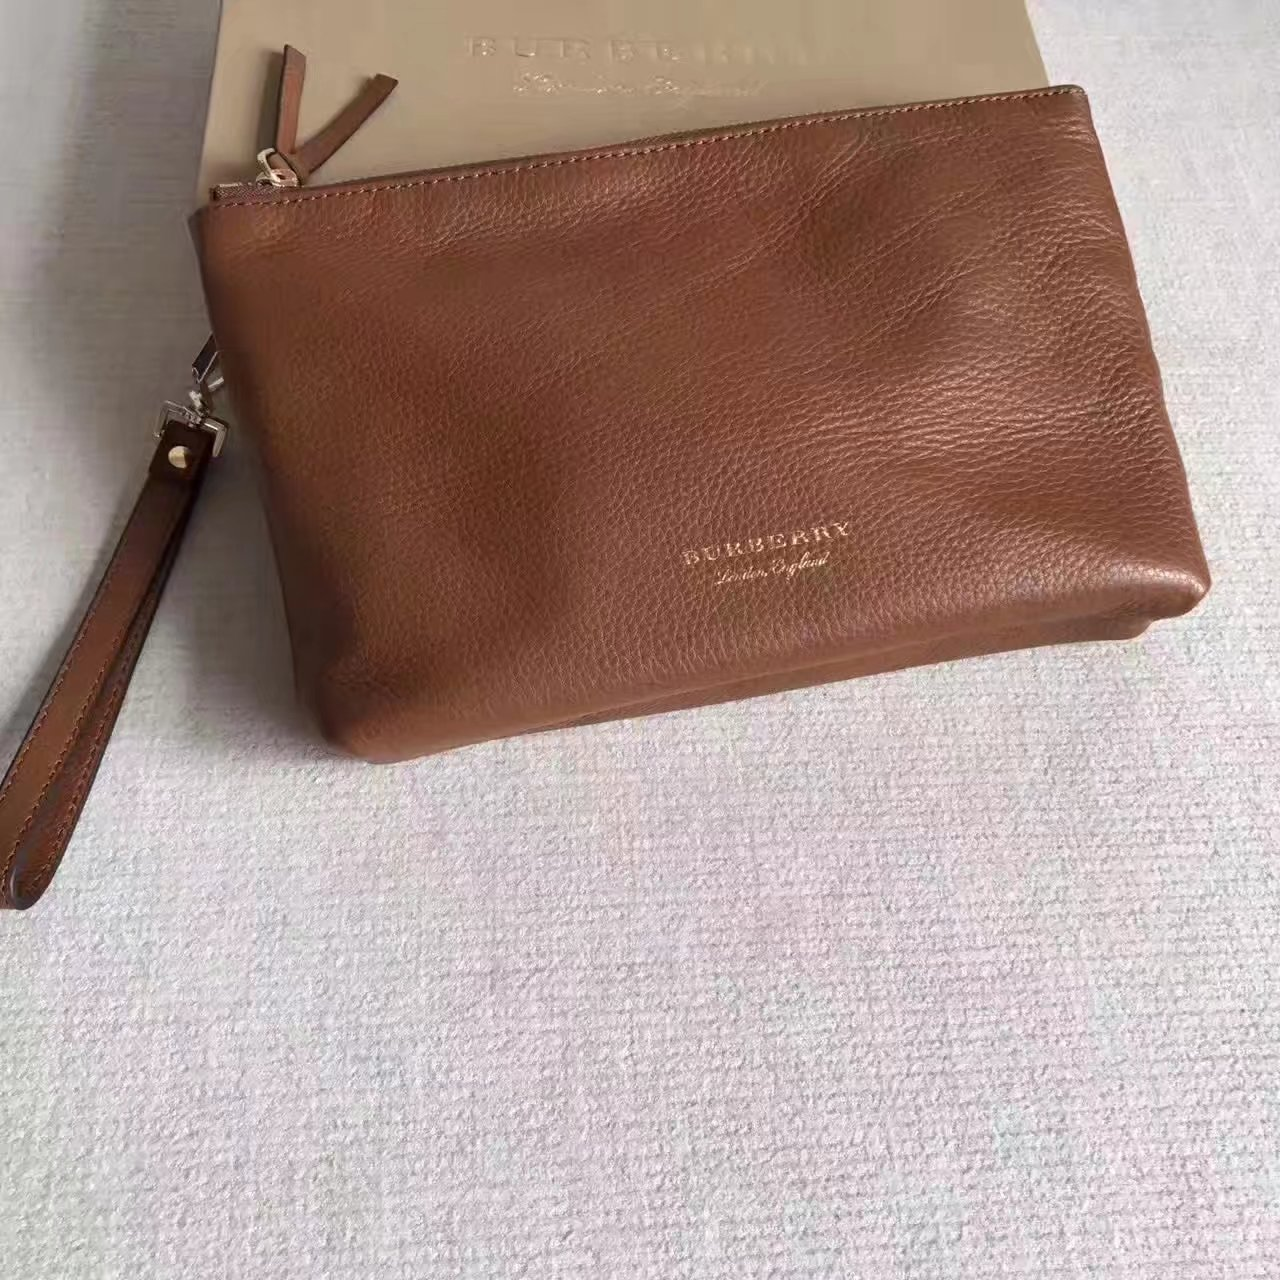 Burberry Women Leather Big Clutch Bag Chestnut Brown